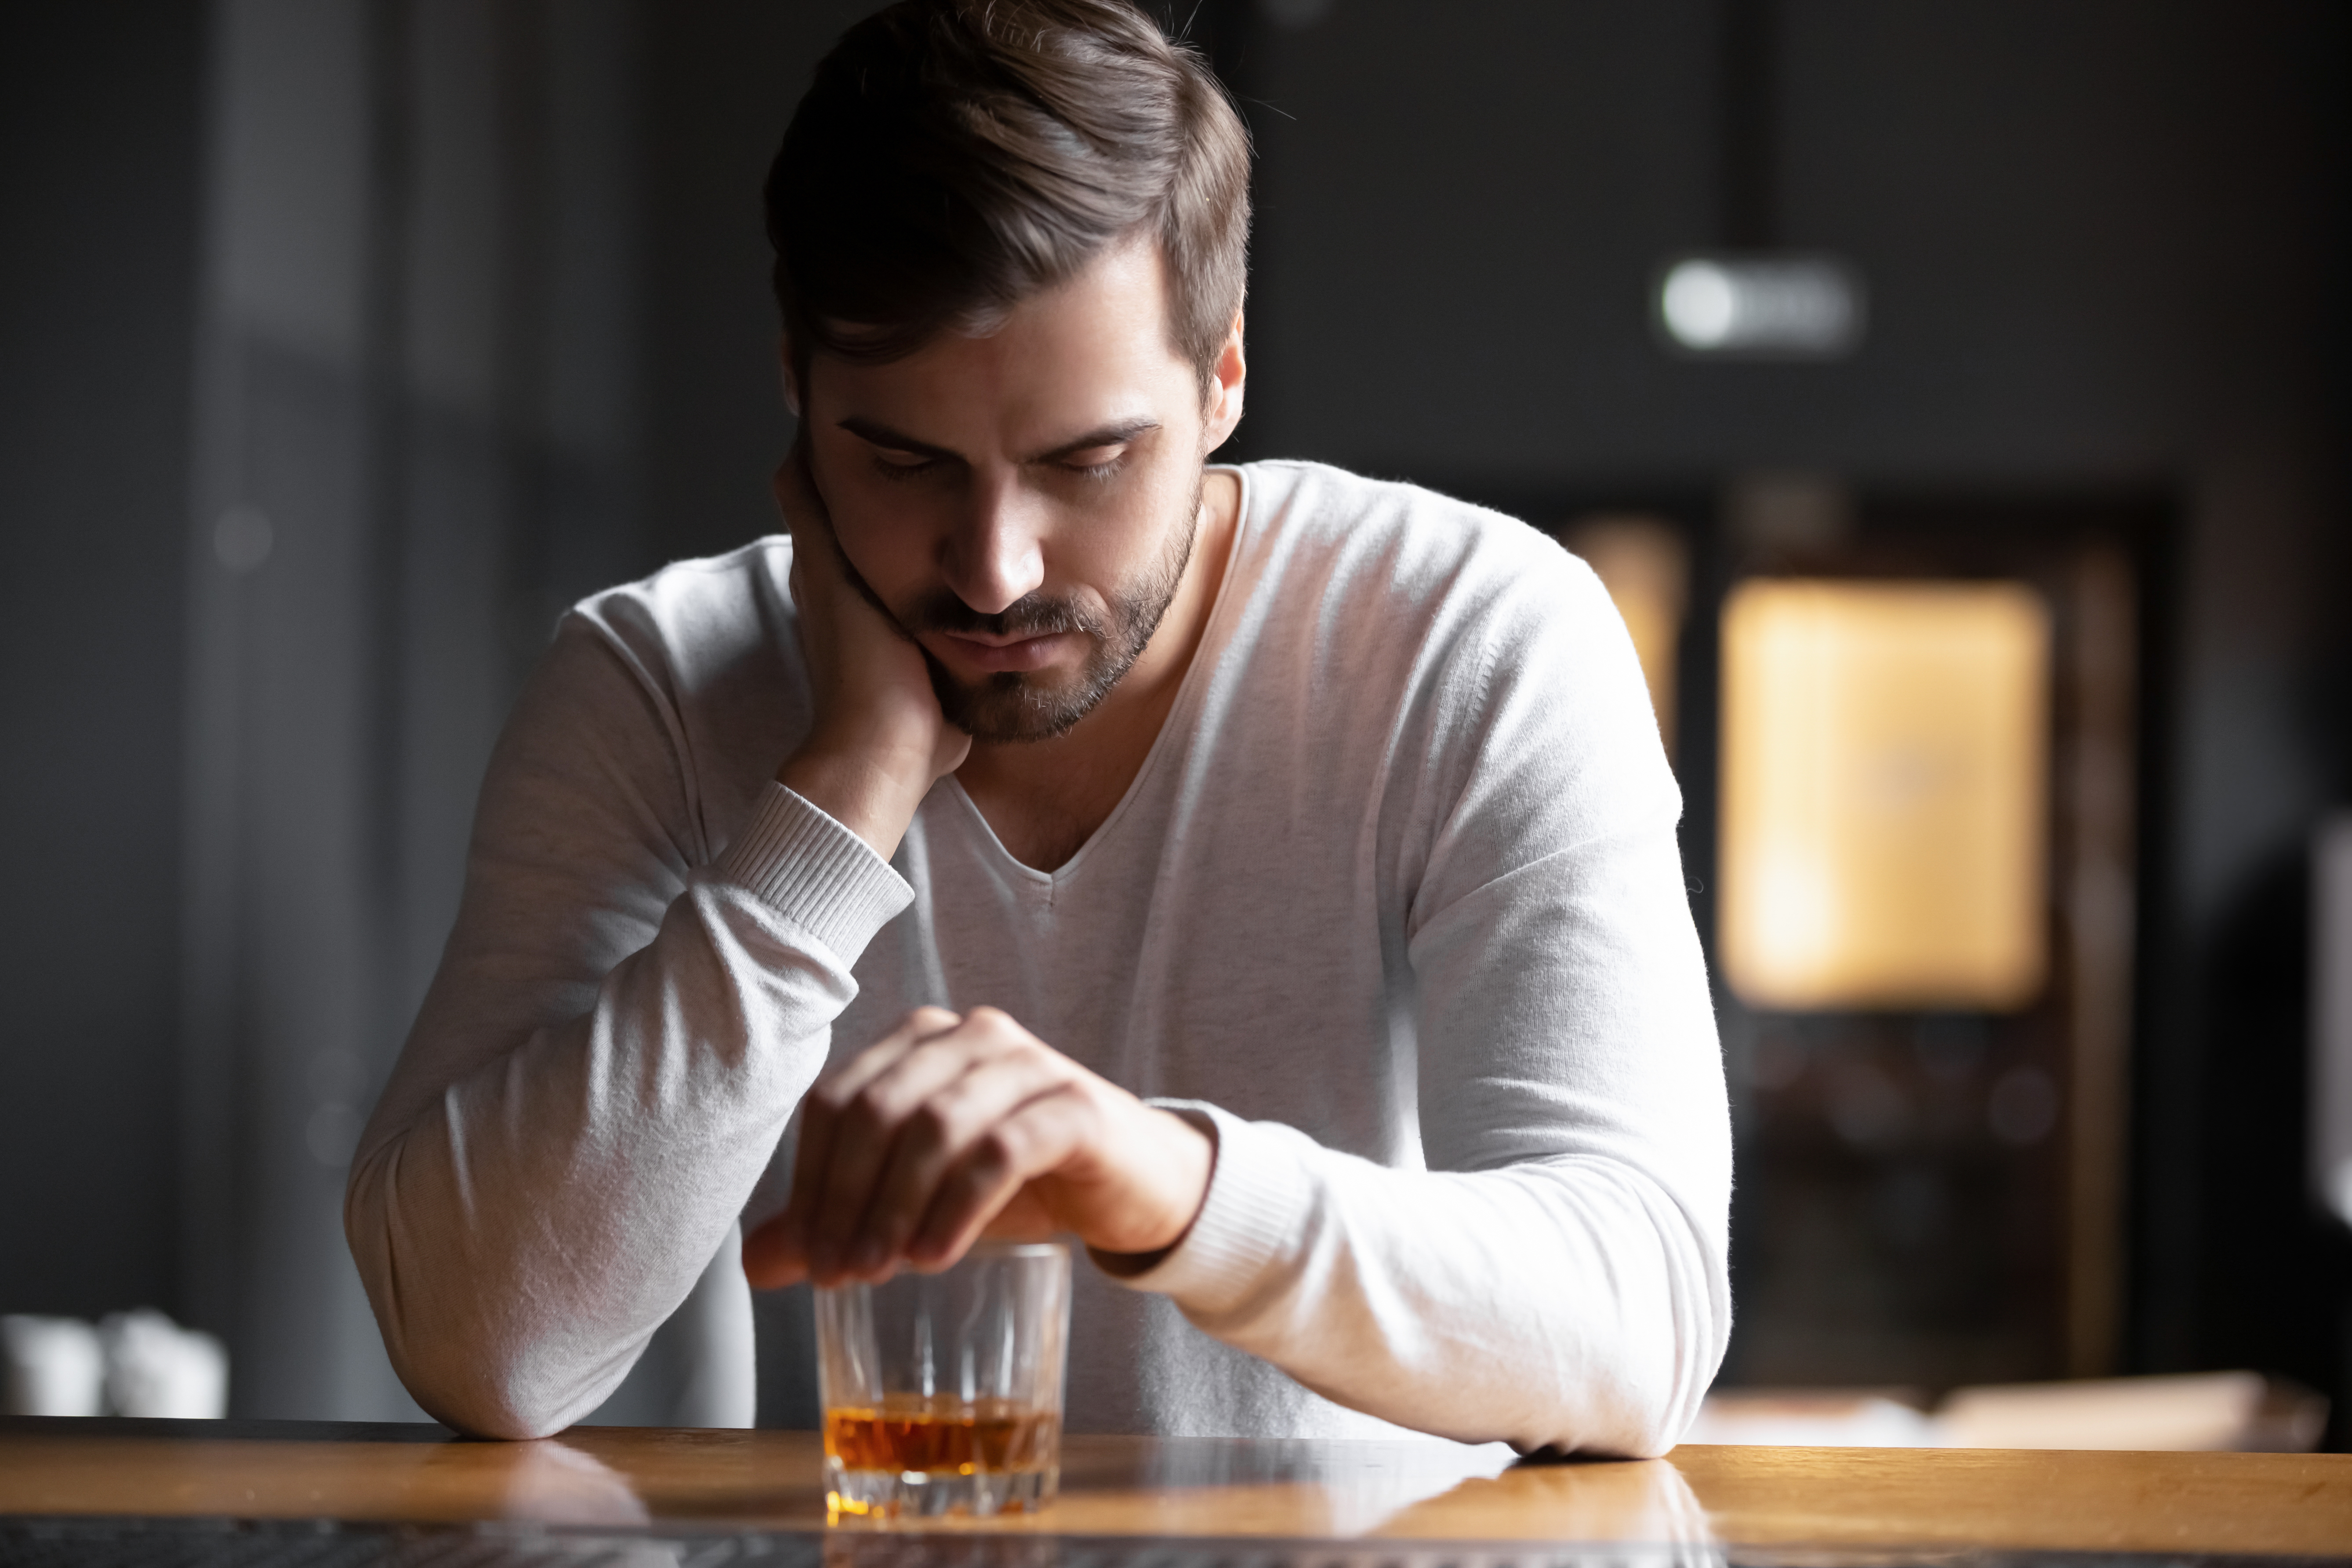 Man suffering with alcoholism